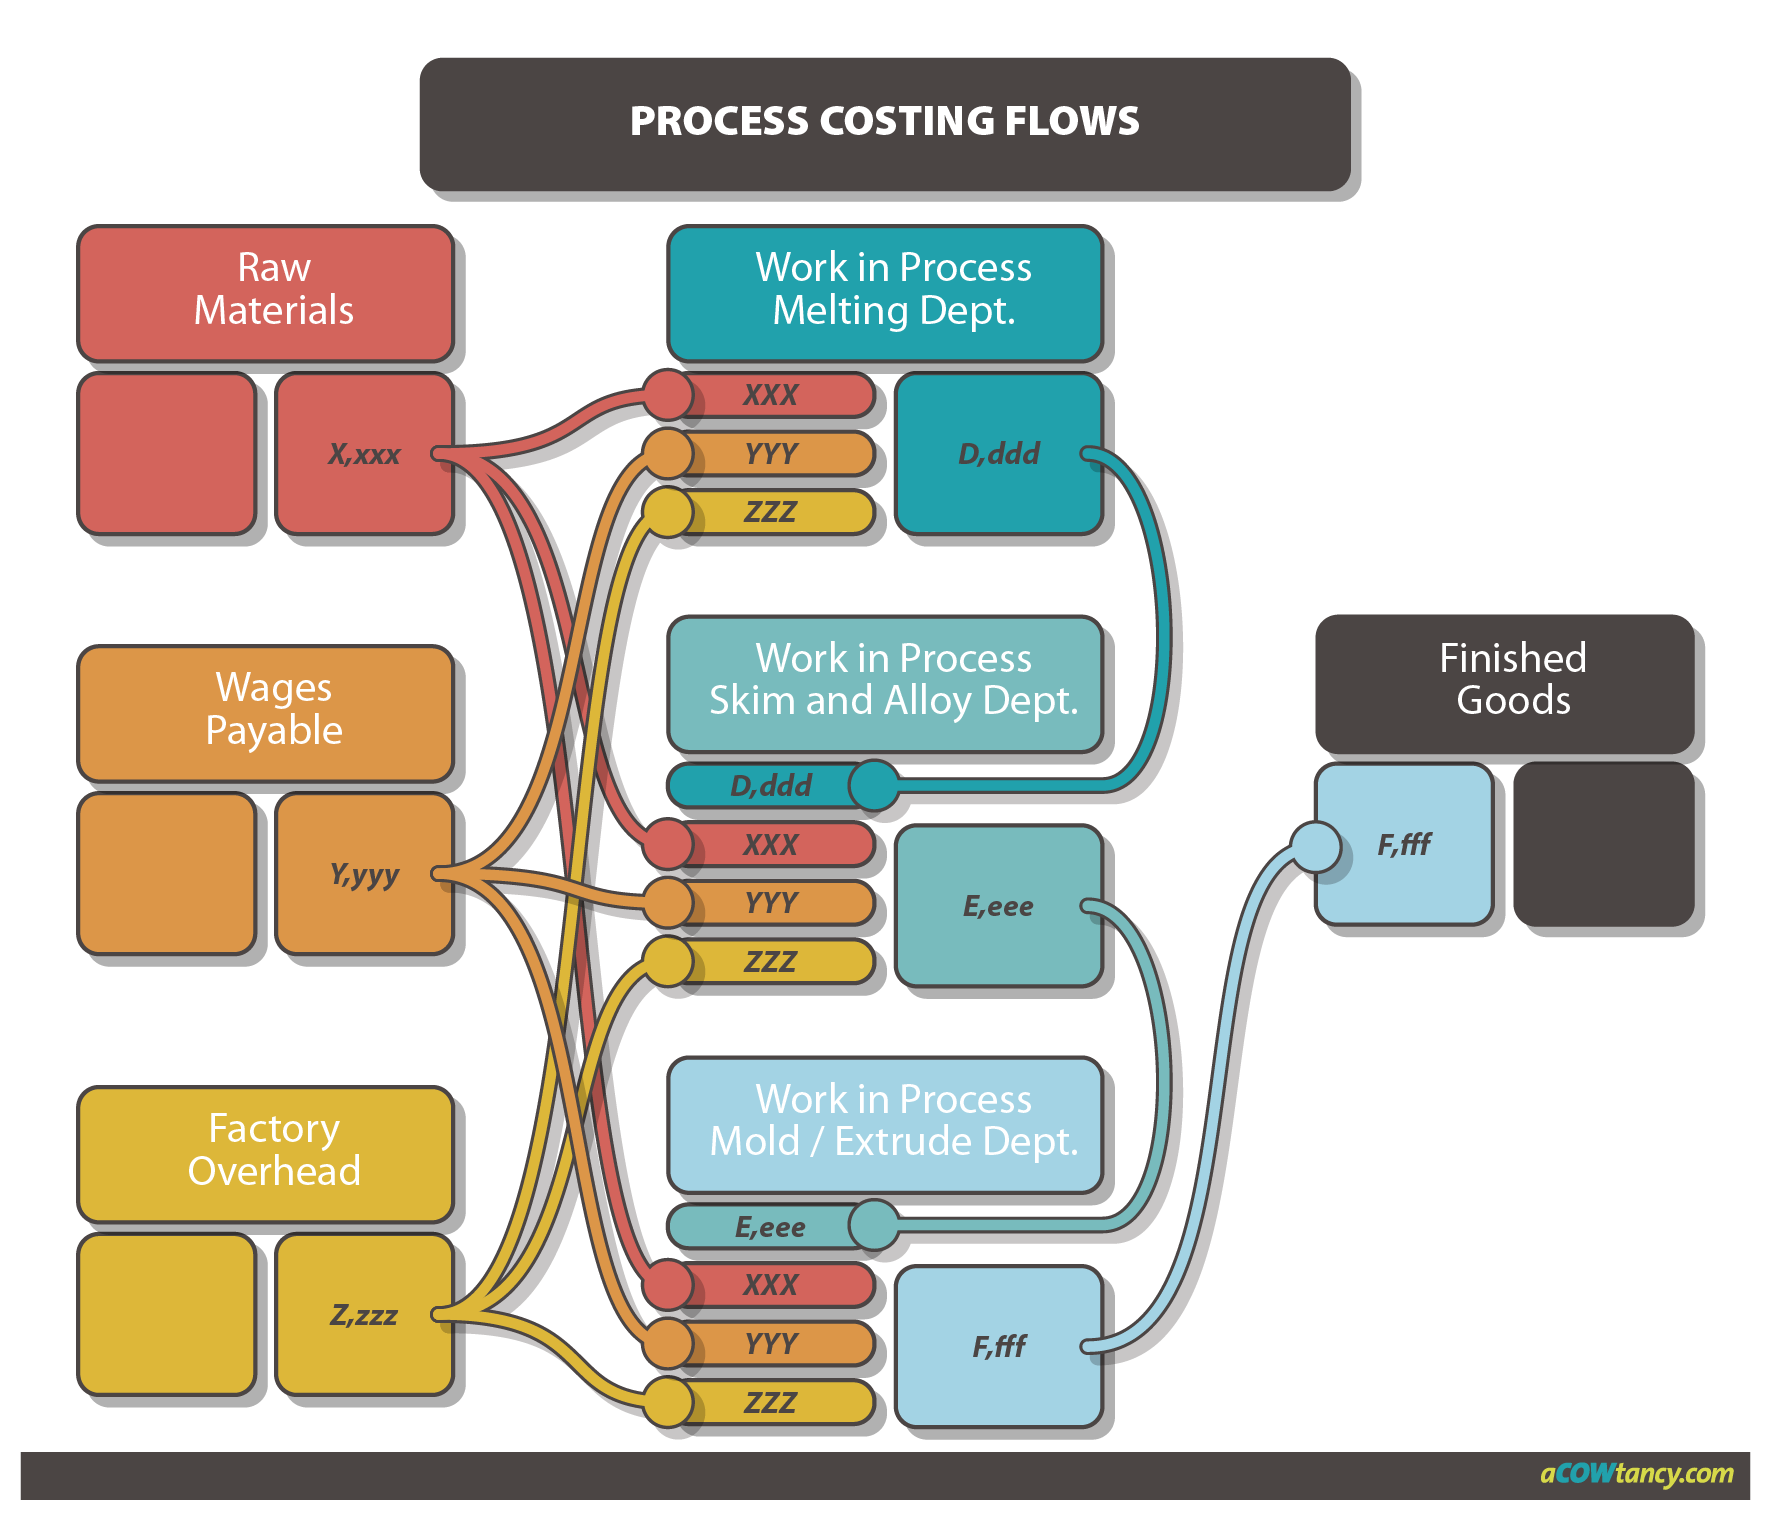 processing costing Use these assessment tools to guide your understanding of process costing the quiz can be answered at any time from your laptop or cell phone.